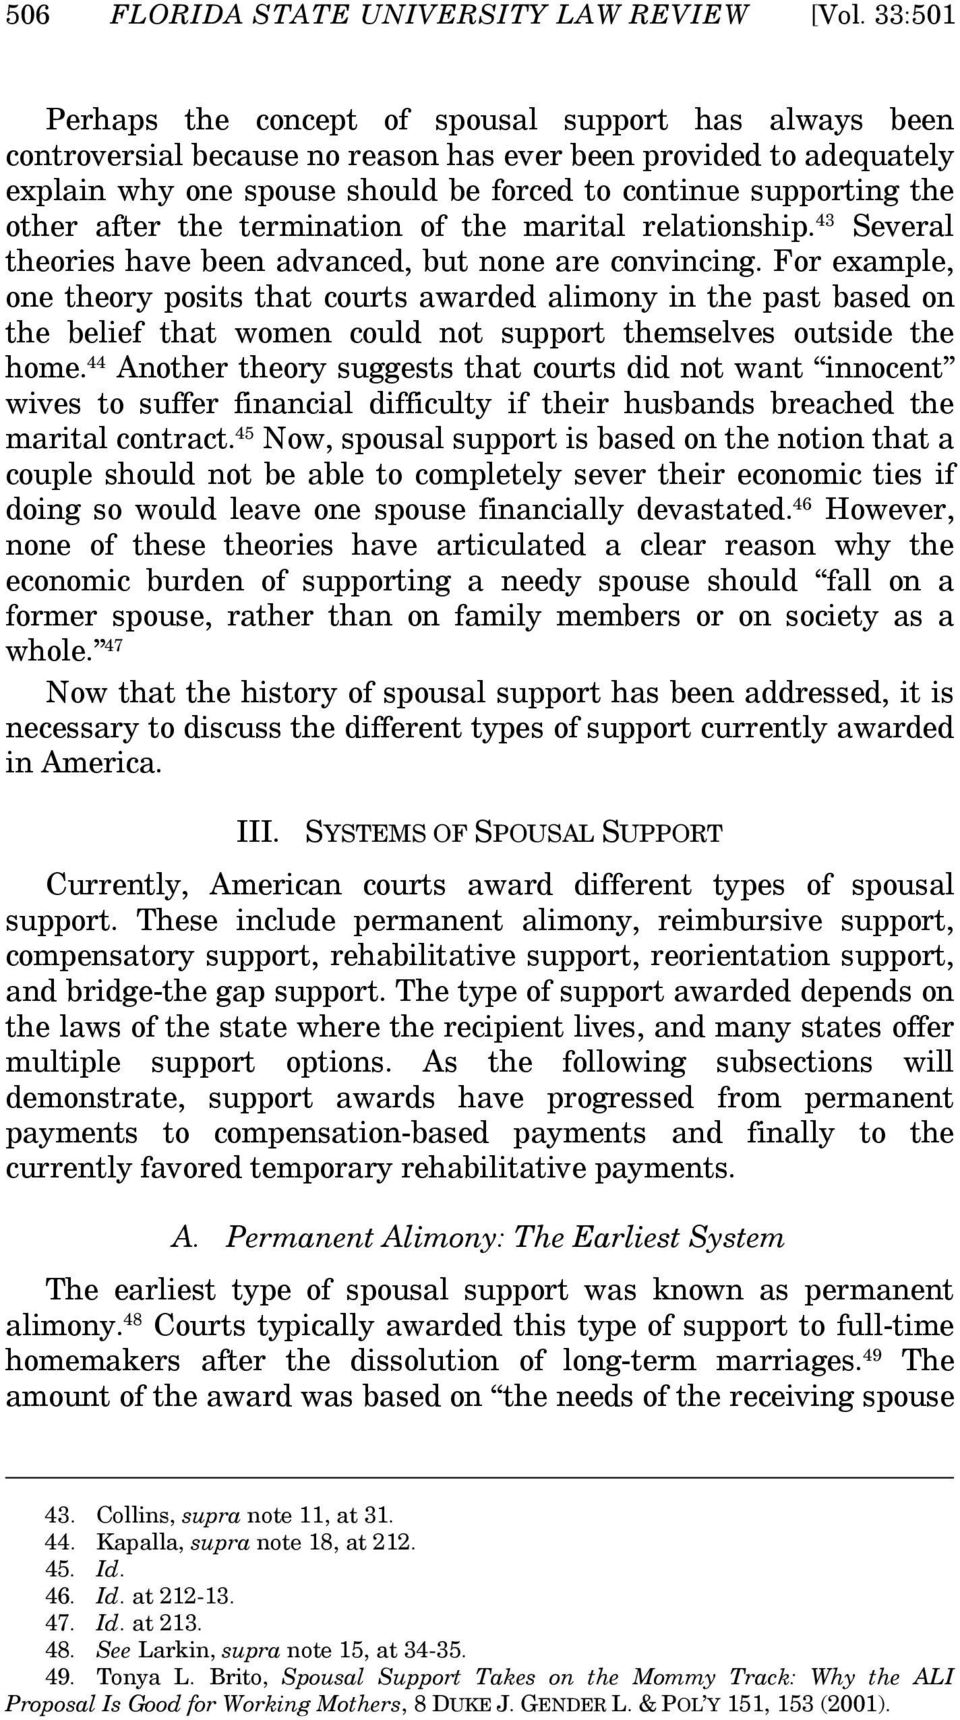 SPOUSAL SUPPORT DISORDER: AN OVERVIEW OF PROBLEMS IN CURRENT